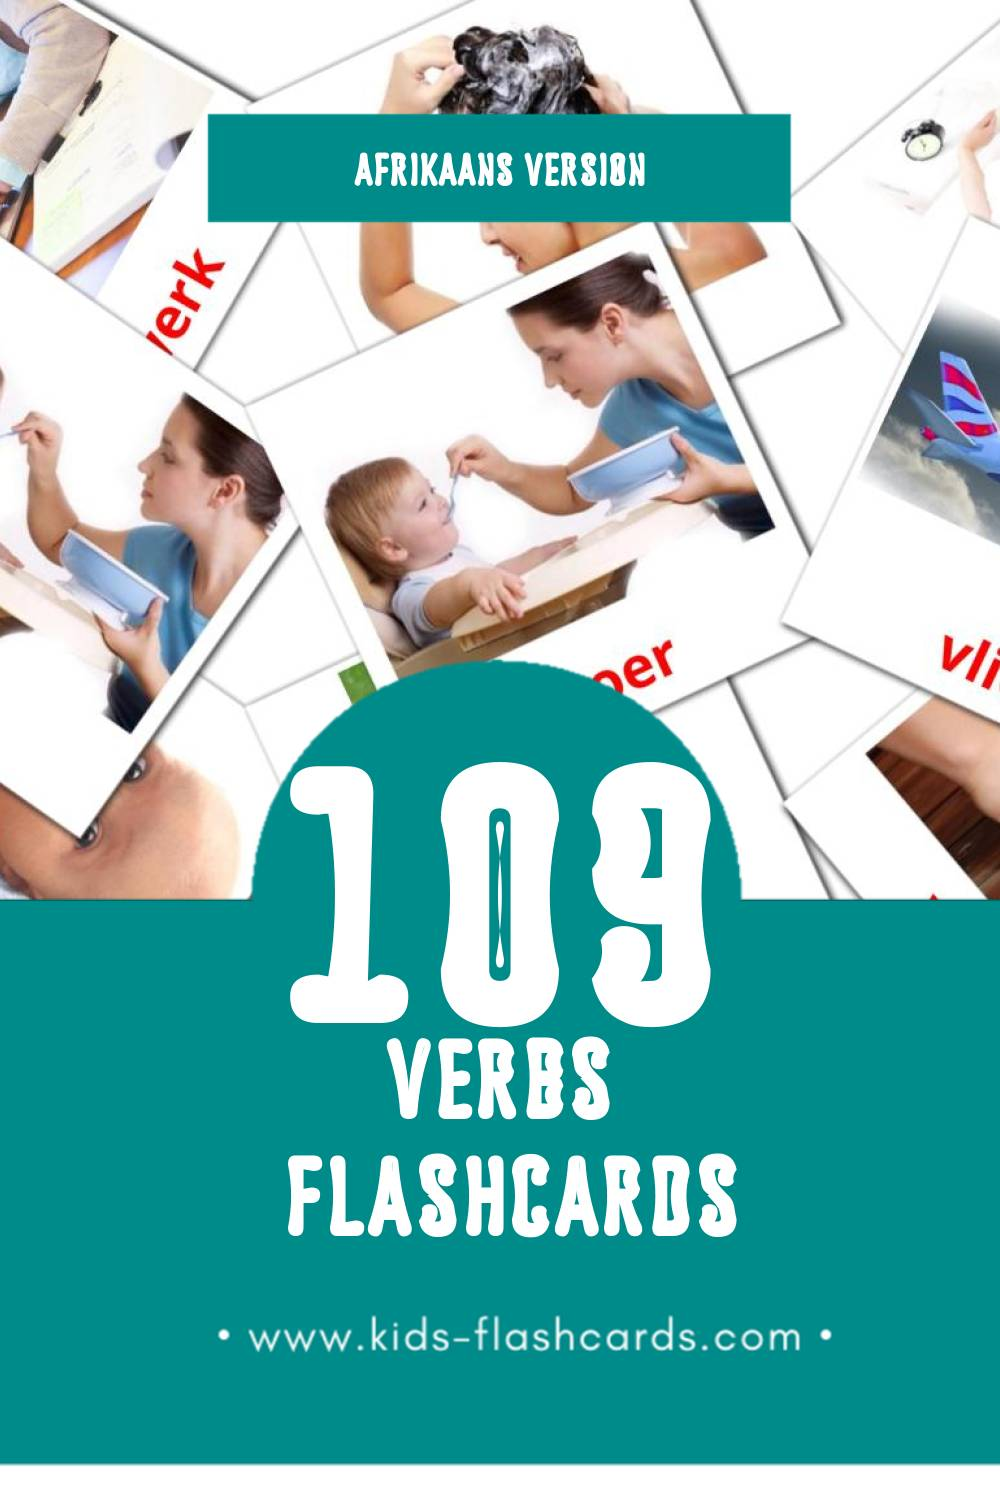 Visual Foljet Flashcards for Toddlers (55 cards in Afrikaans)